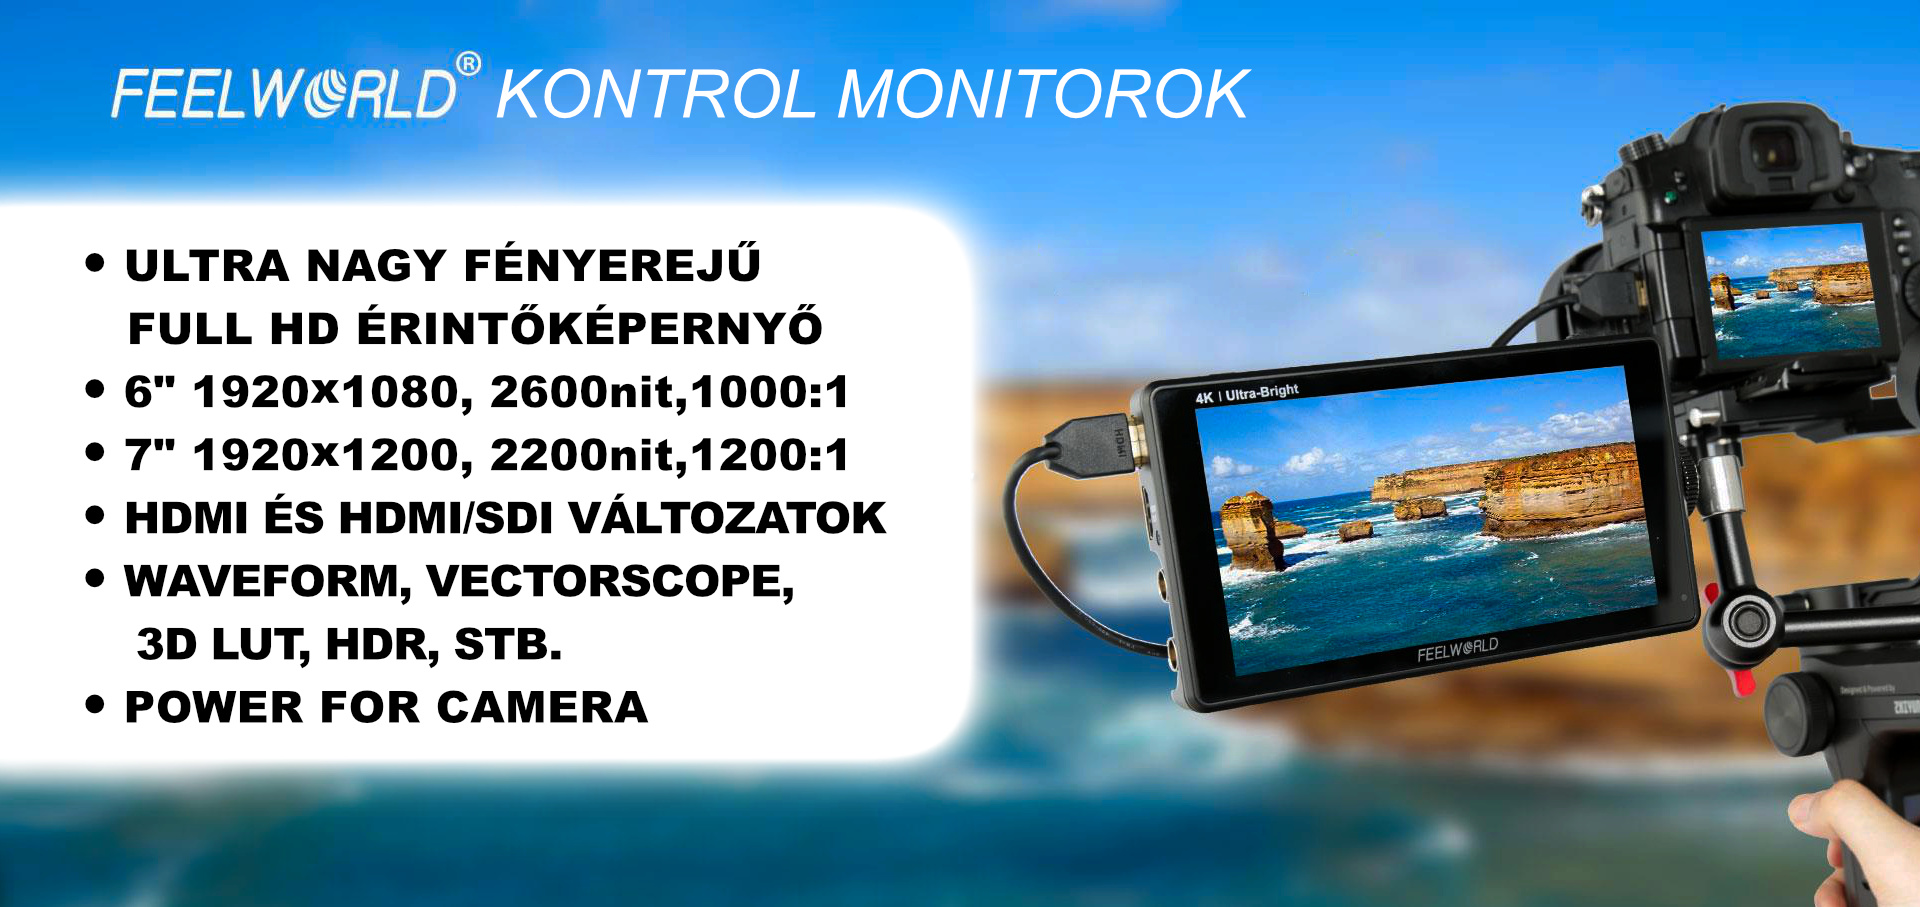 FEELWORLD kontrol monitorok